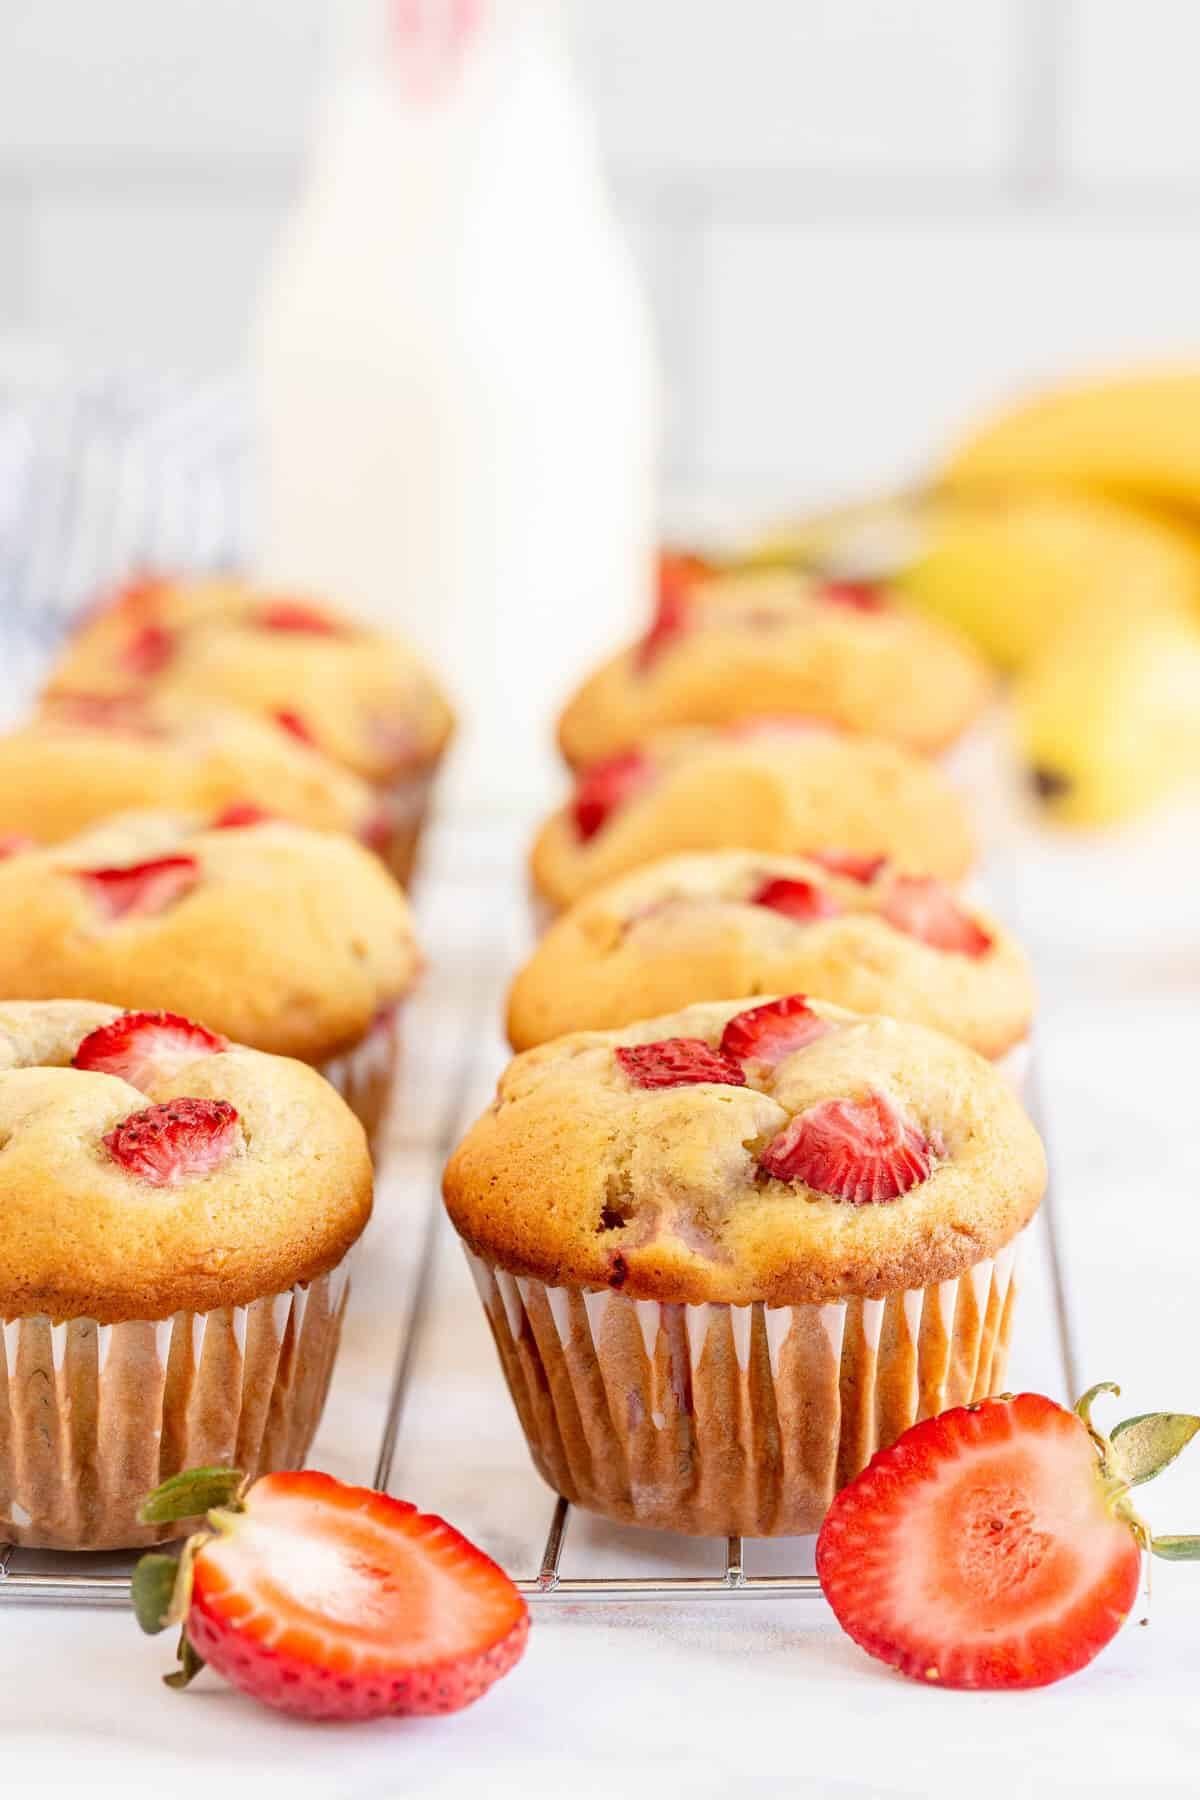 strawberry muffins with a bottle of milk in the background